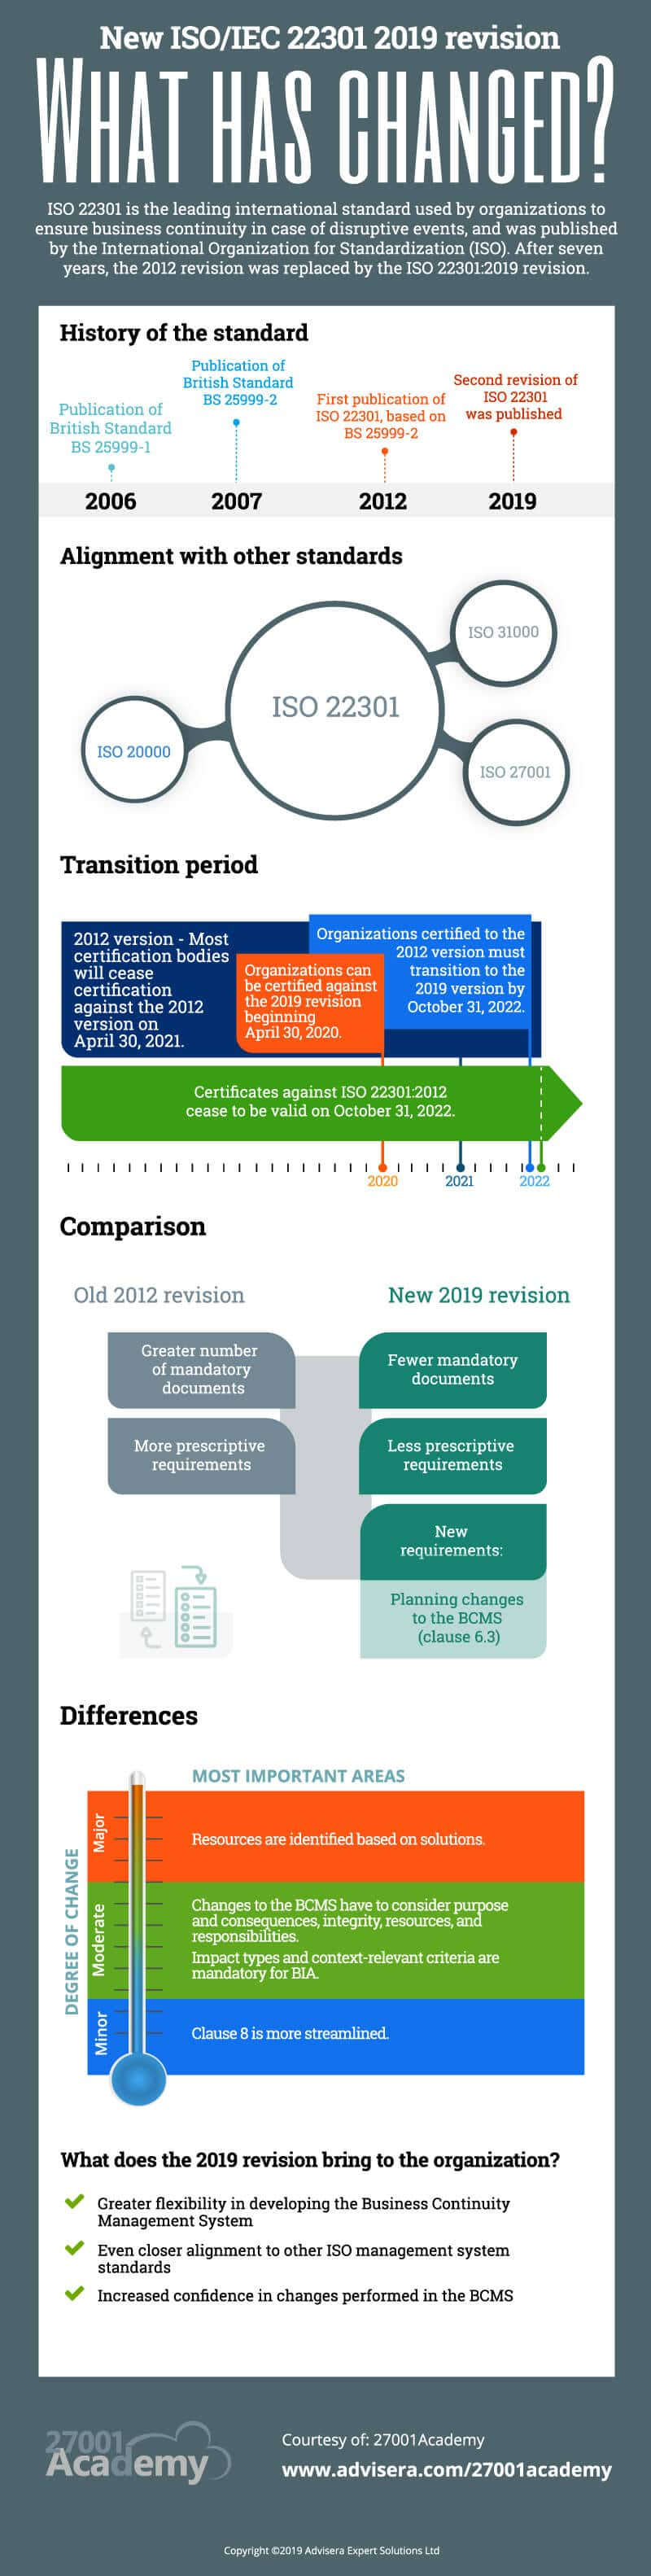 Infographic: ISO 22301:2012 vs. ISO 22301:2019 revision – What has changed?